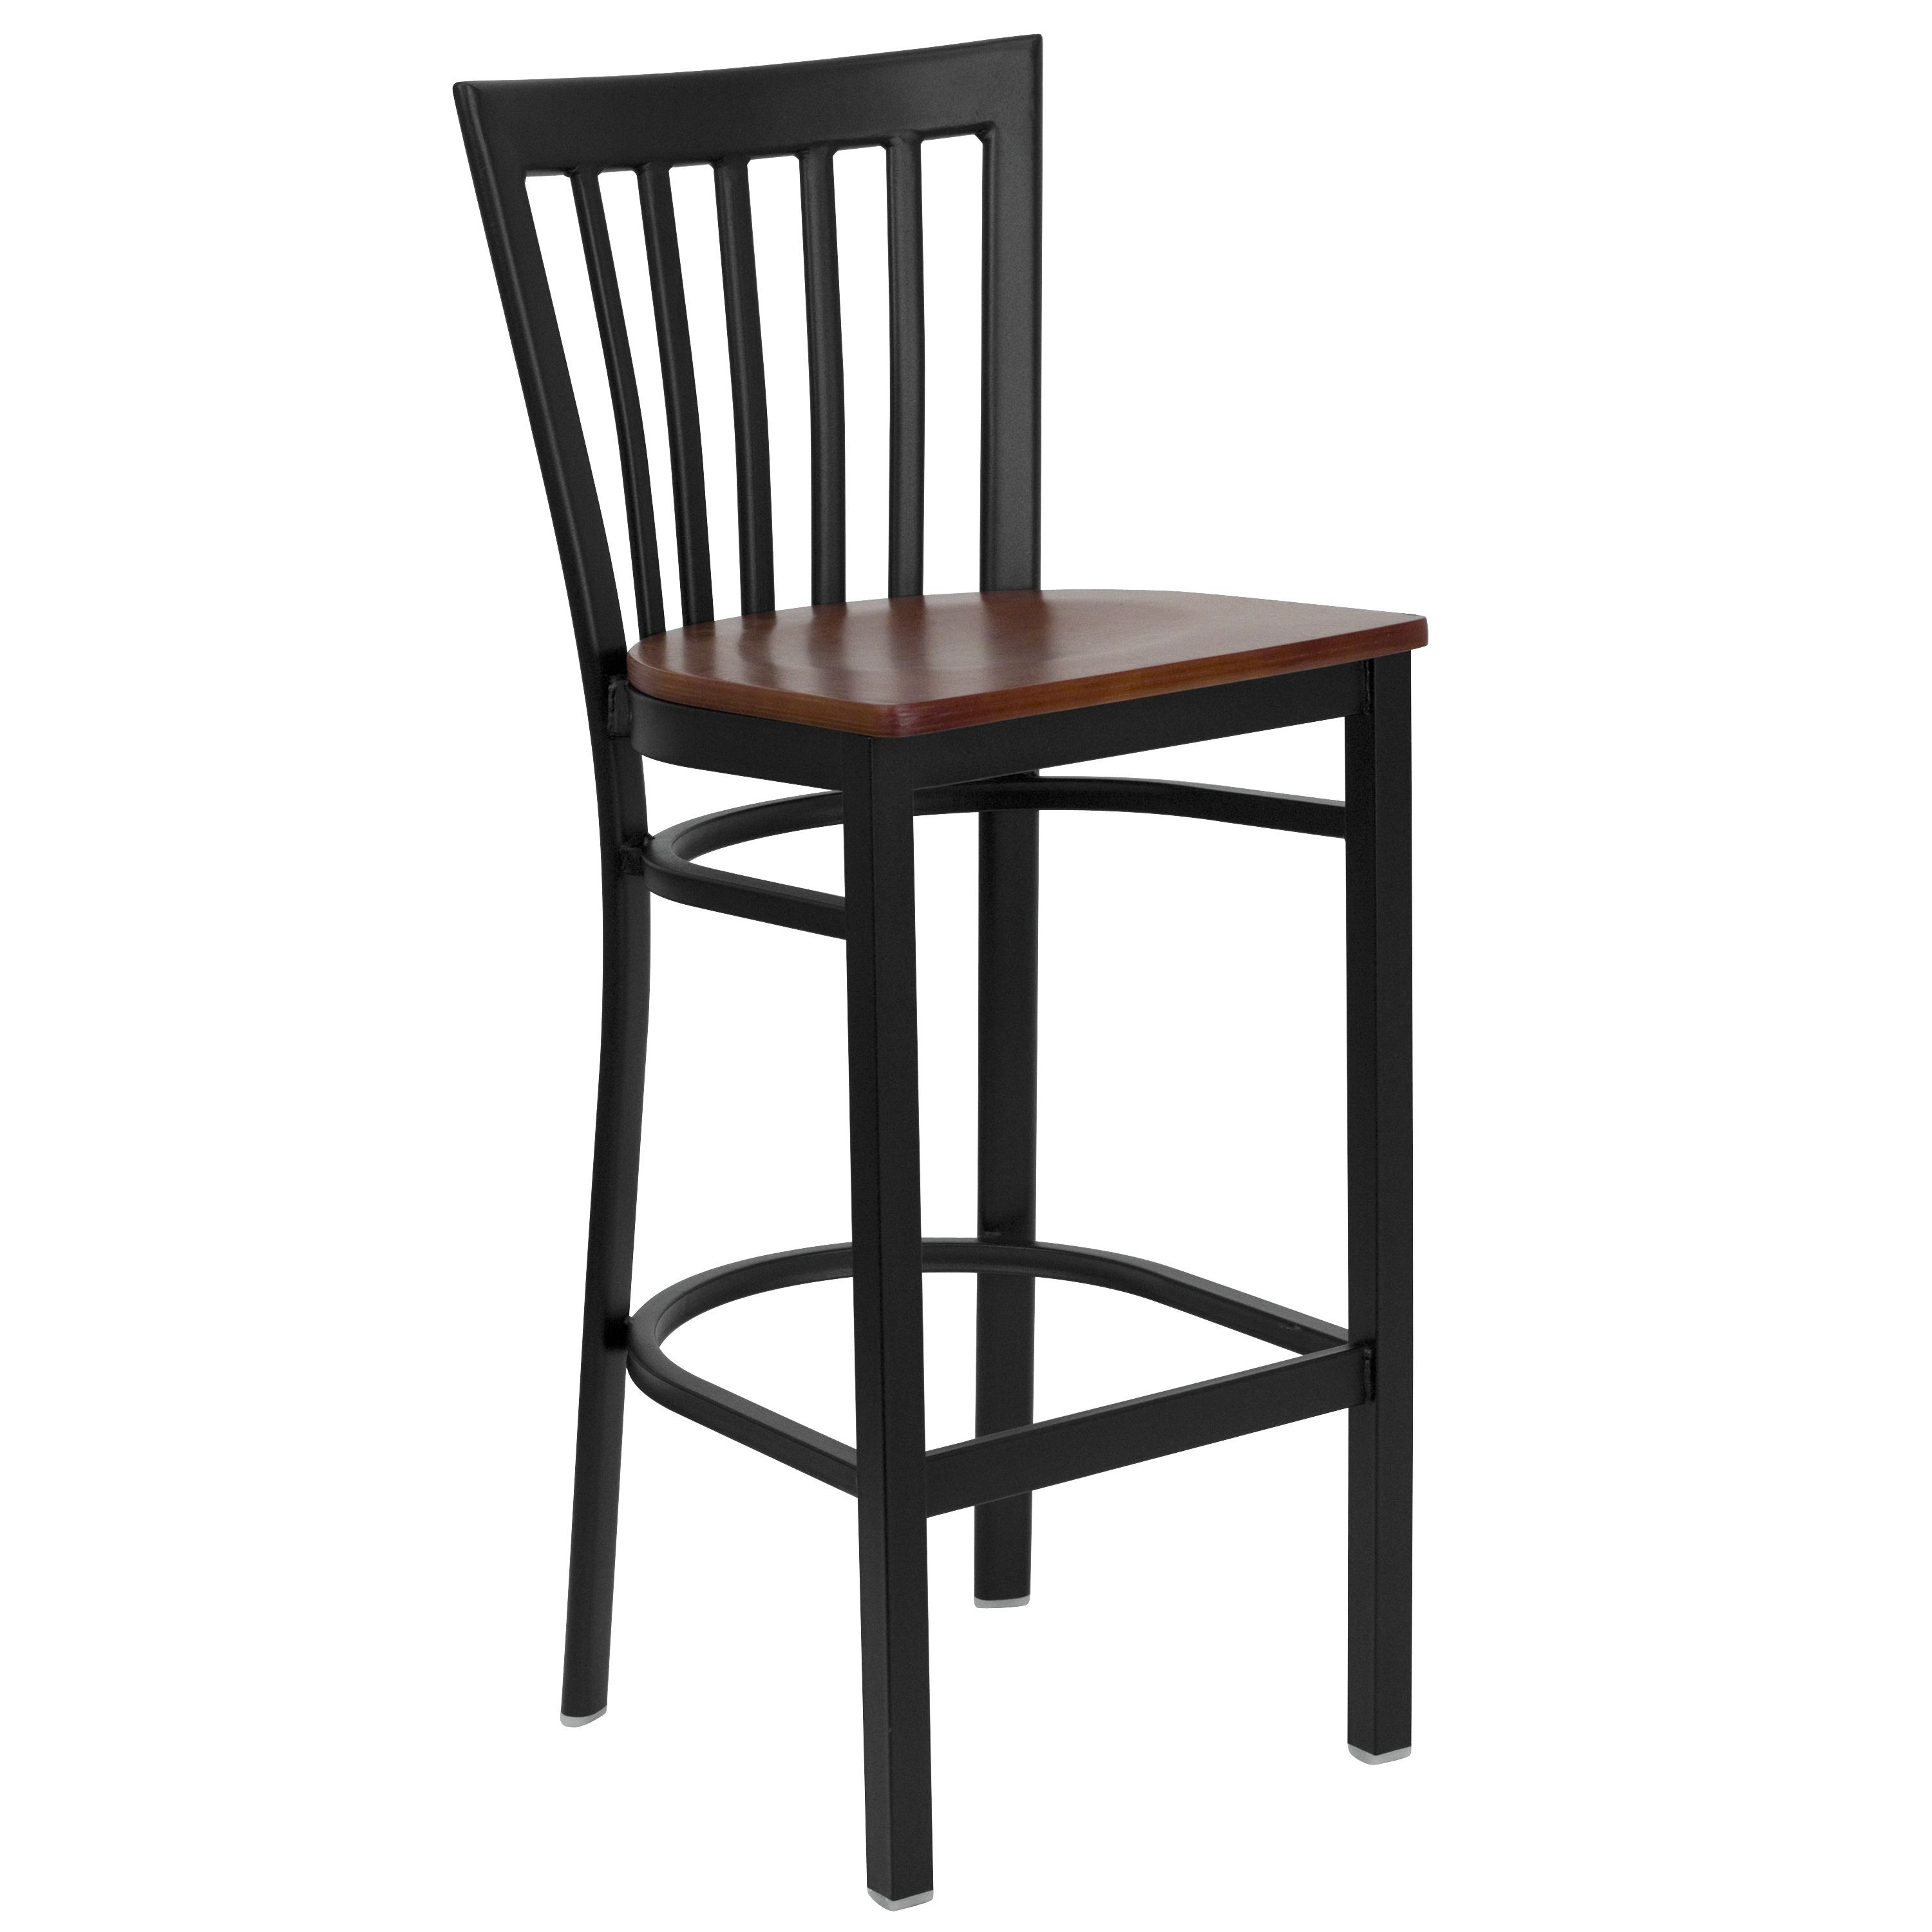 Black School House Back Metal Bar Stool with Cherry Wood Seat